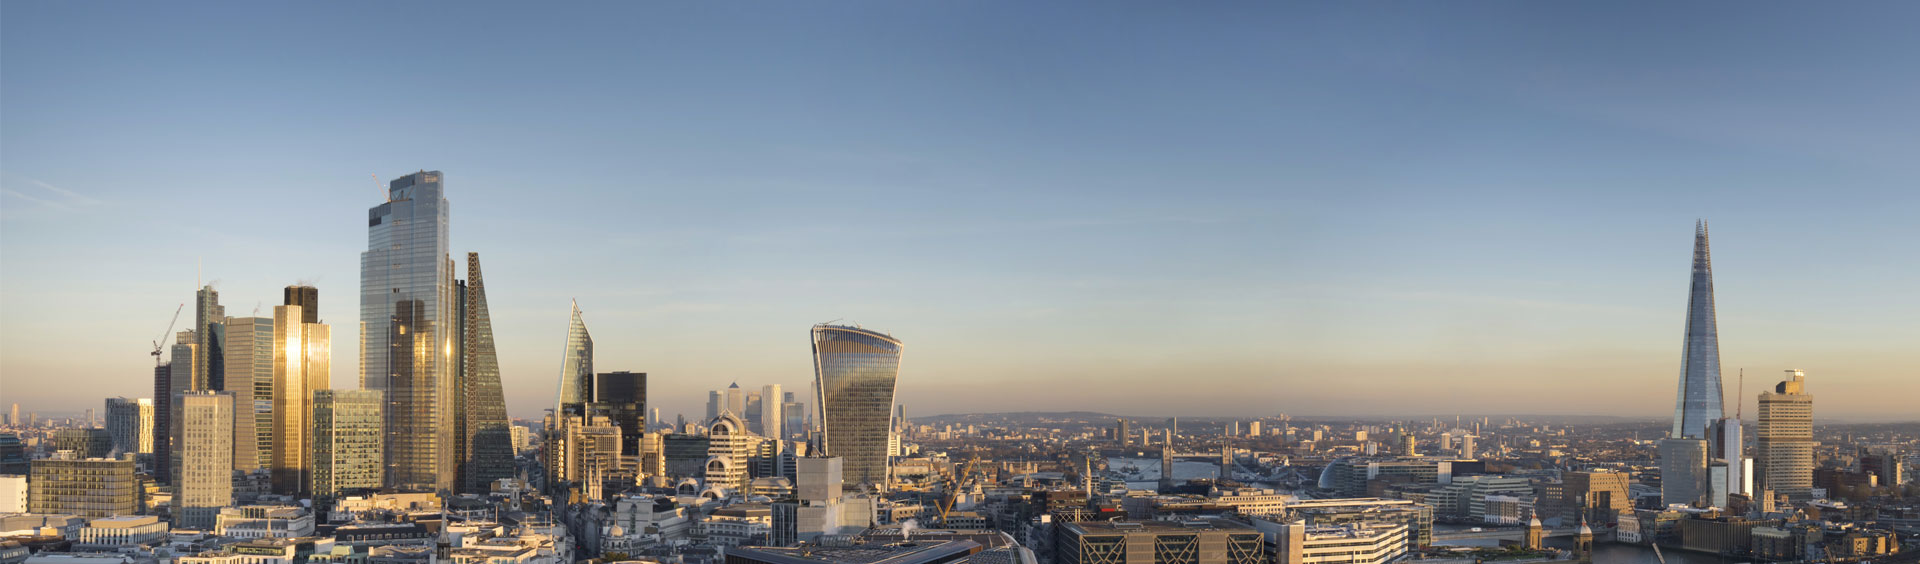 Iconic London skyline